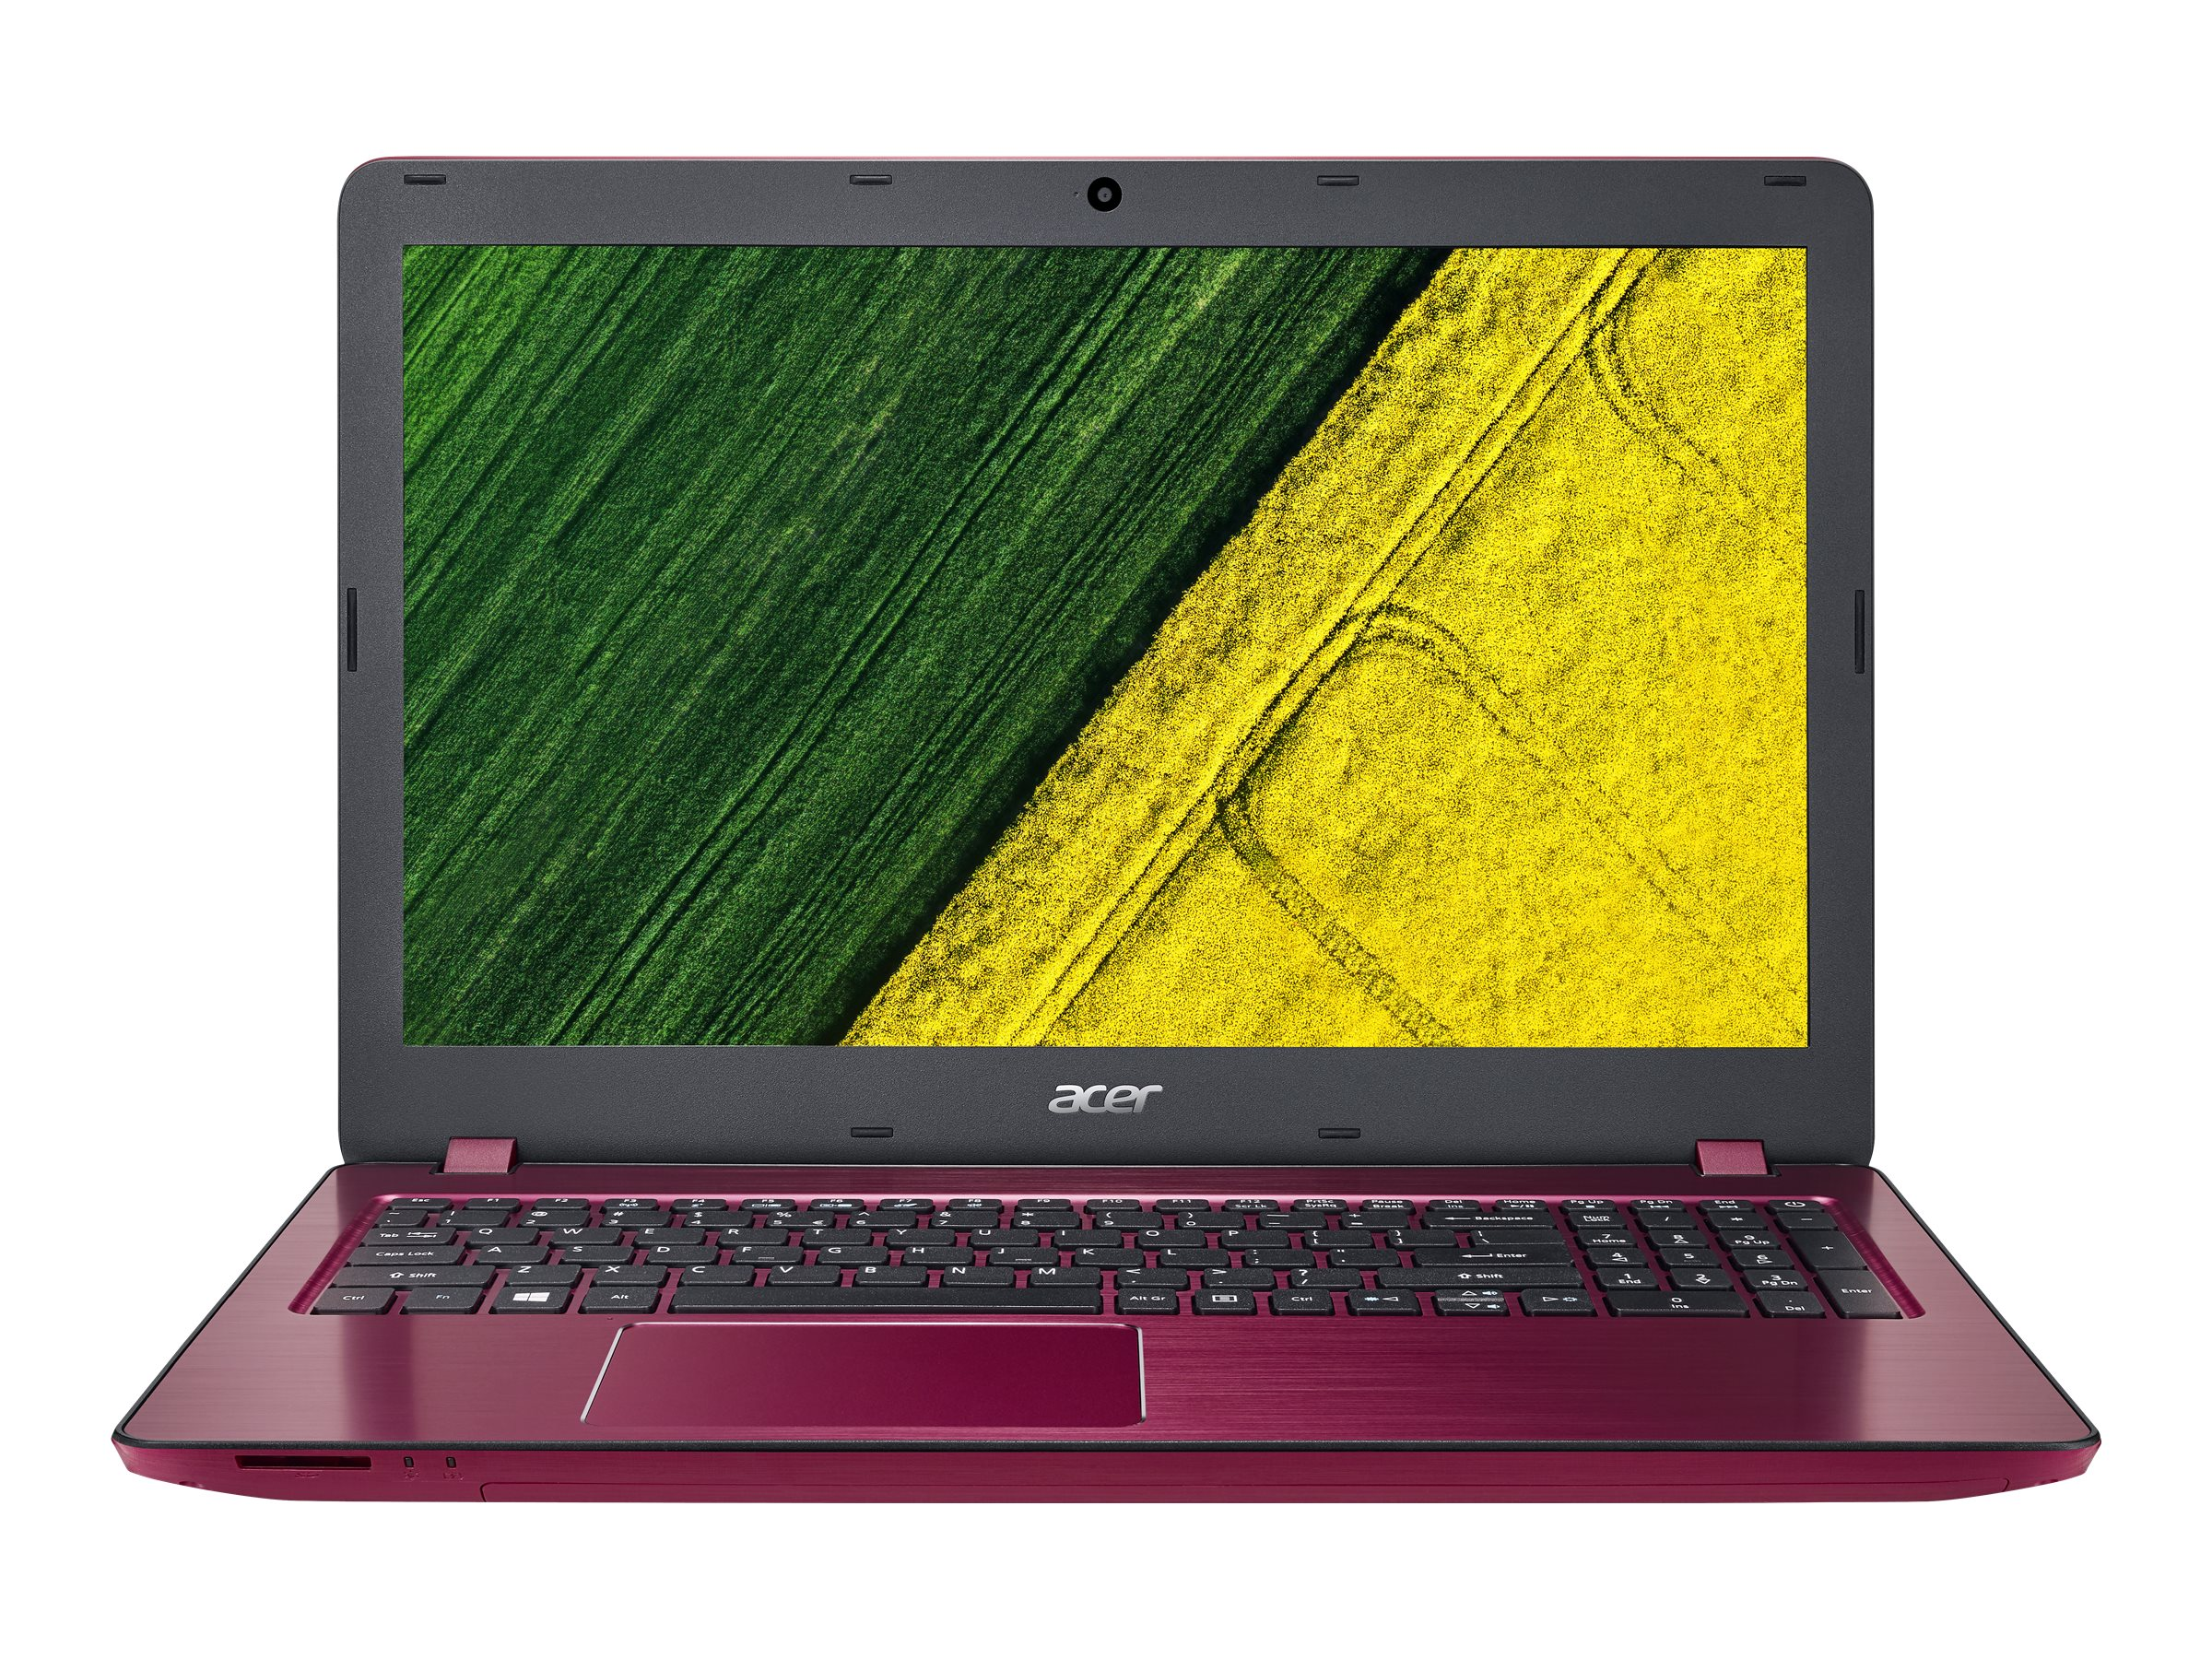 Acer Aspire F5-573-55W1 2.5GHz Core i7 15.6in display, NX.GJZAA.001